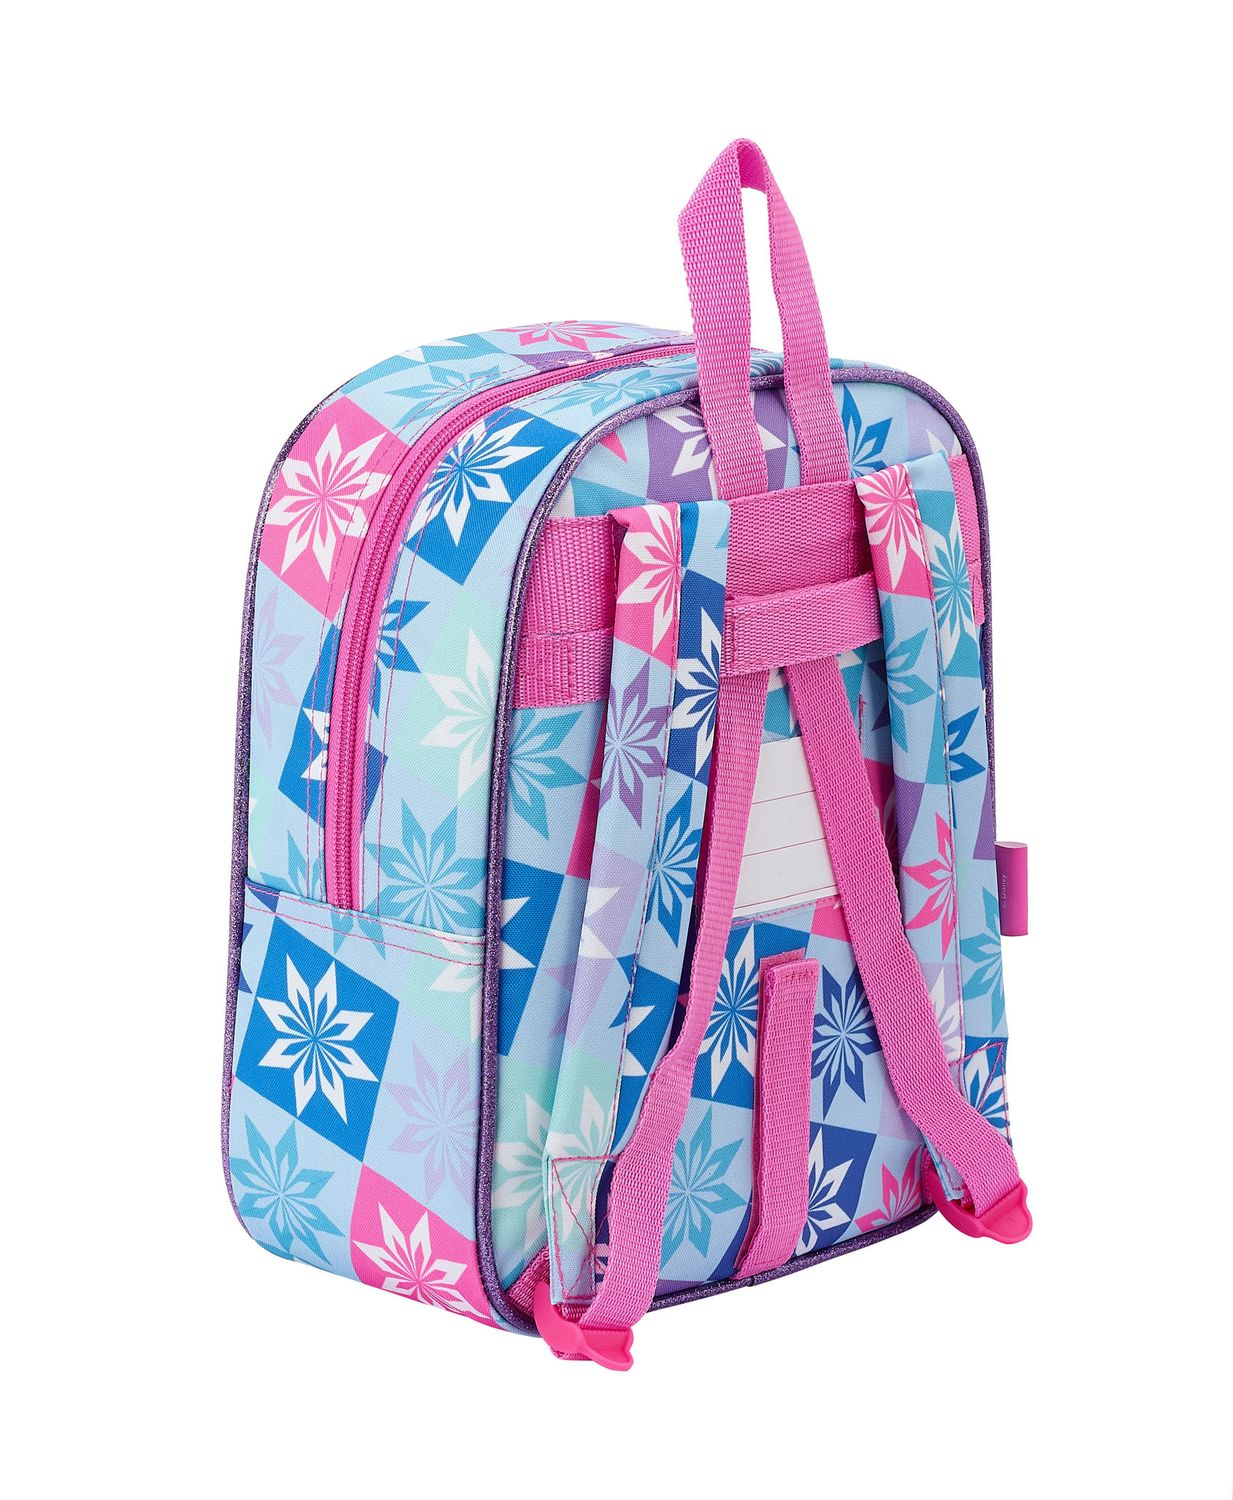 Disney Frozen Ice Magic Junior Rucksack Backpack 27 cm  – image 2